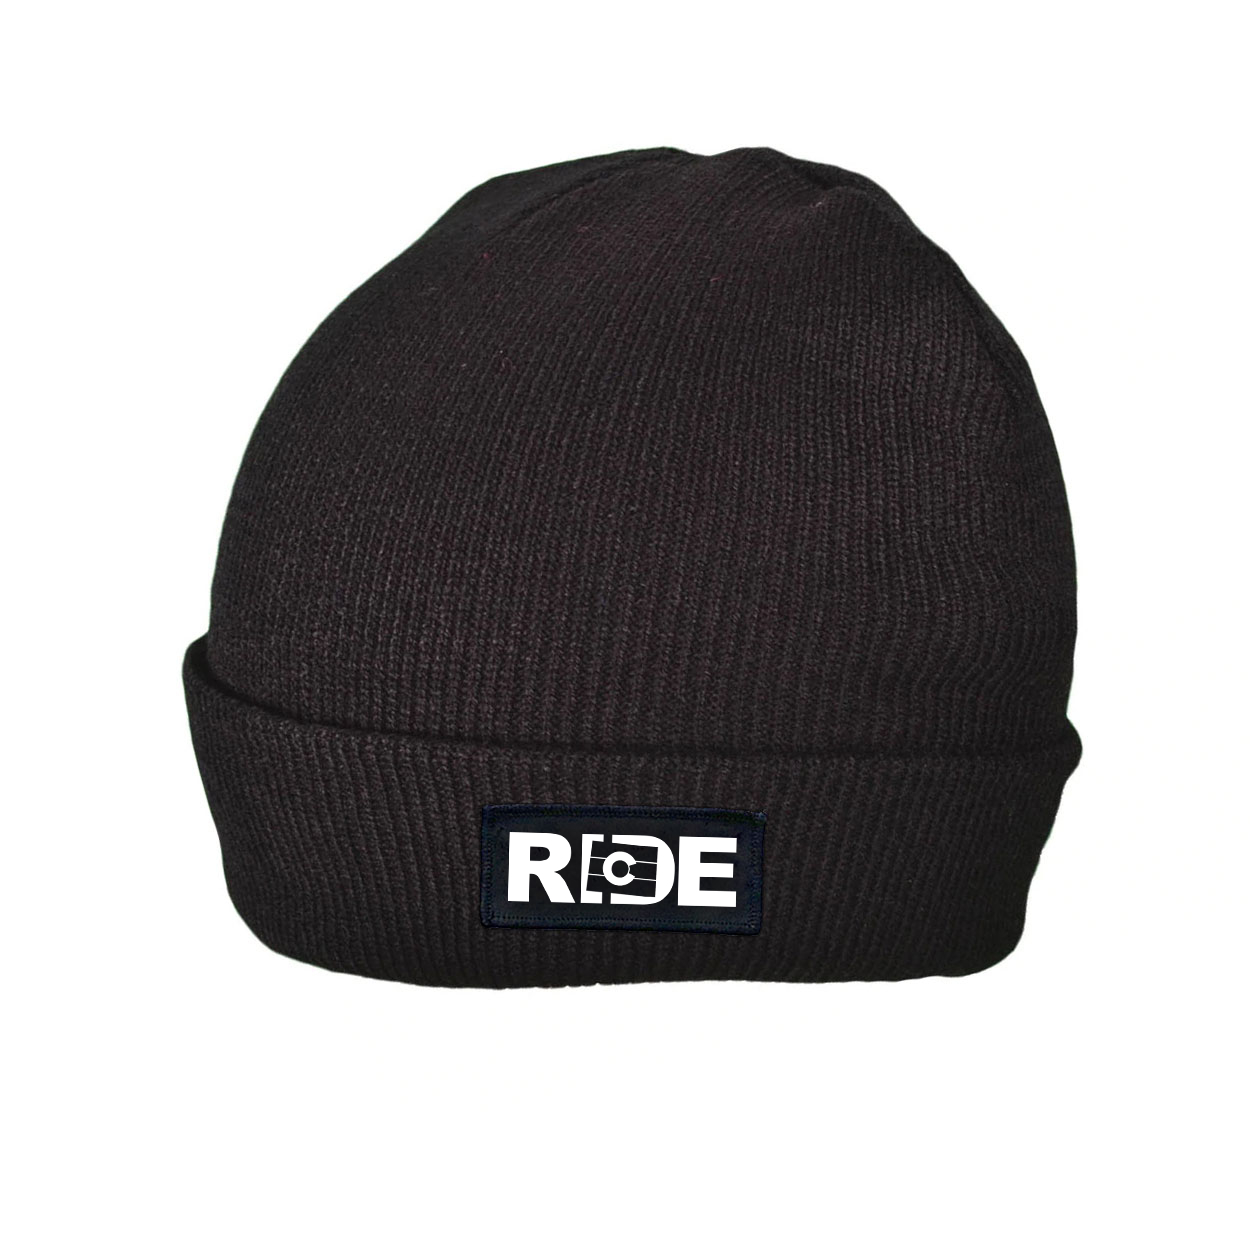 Ride Colorado Night Out Woven Patch Roll Up Skully Beanie Black (White Logo)